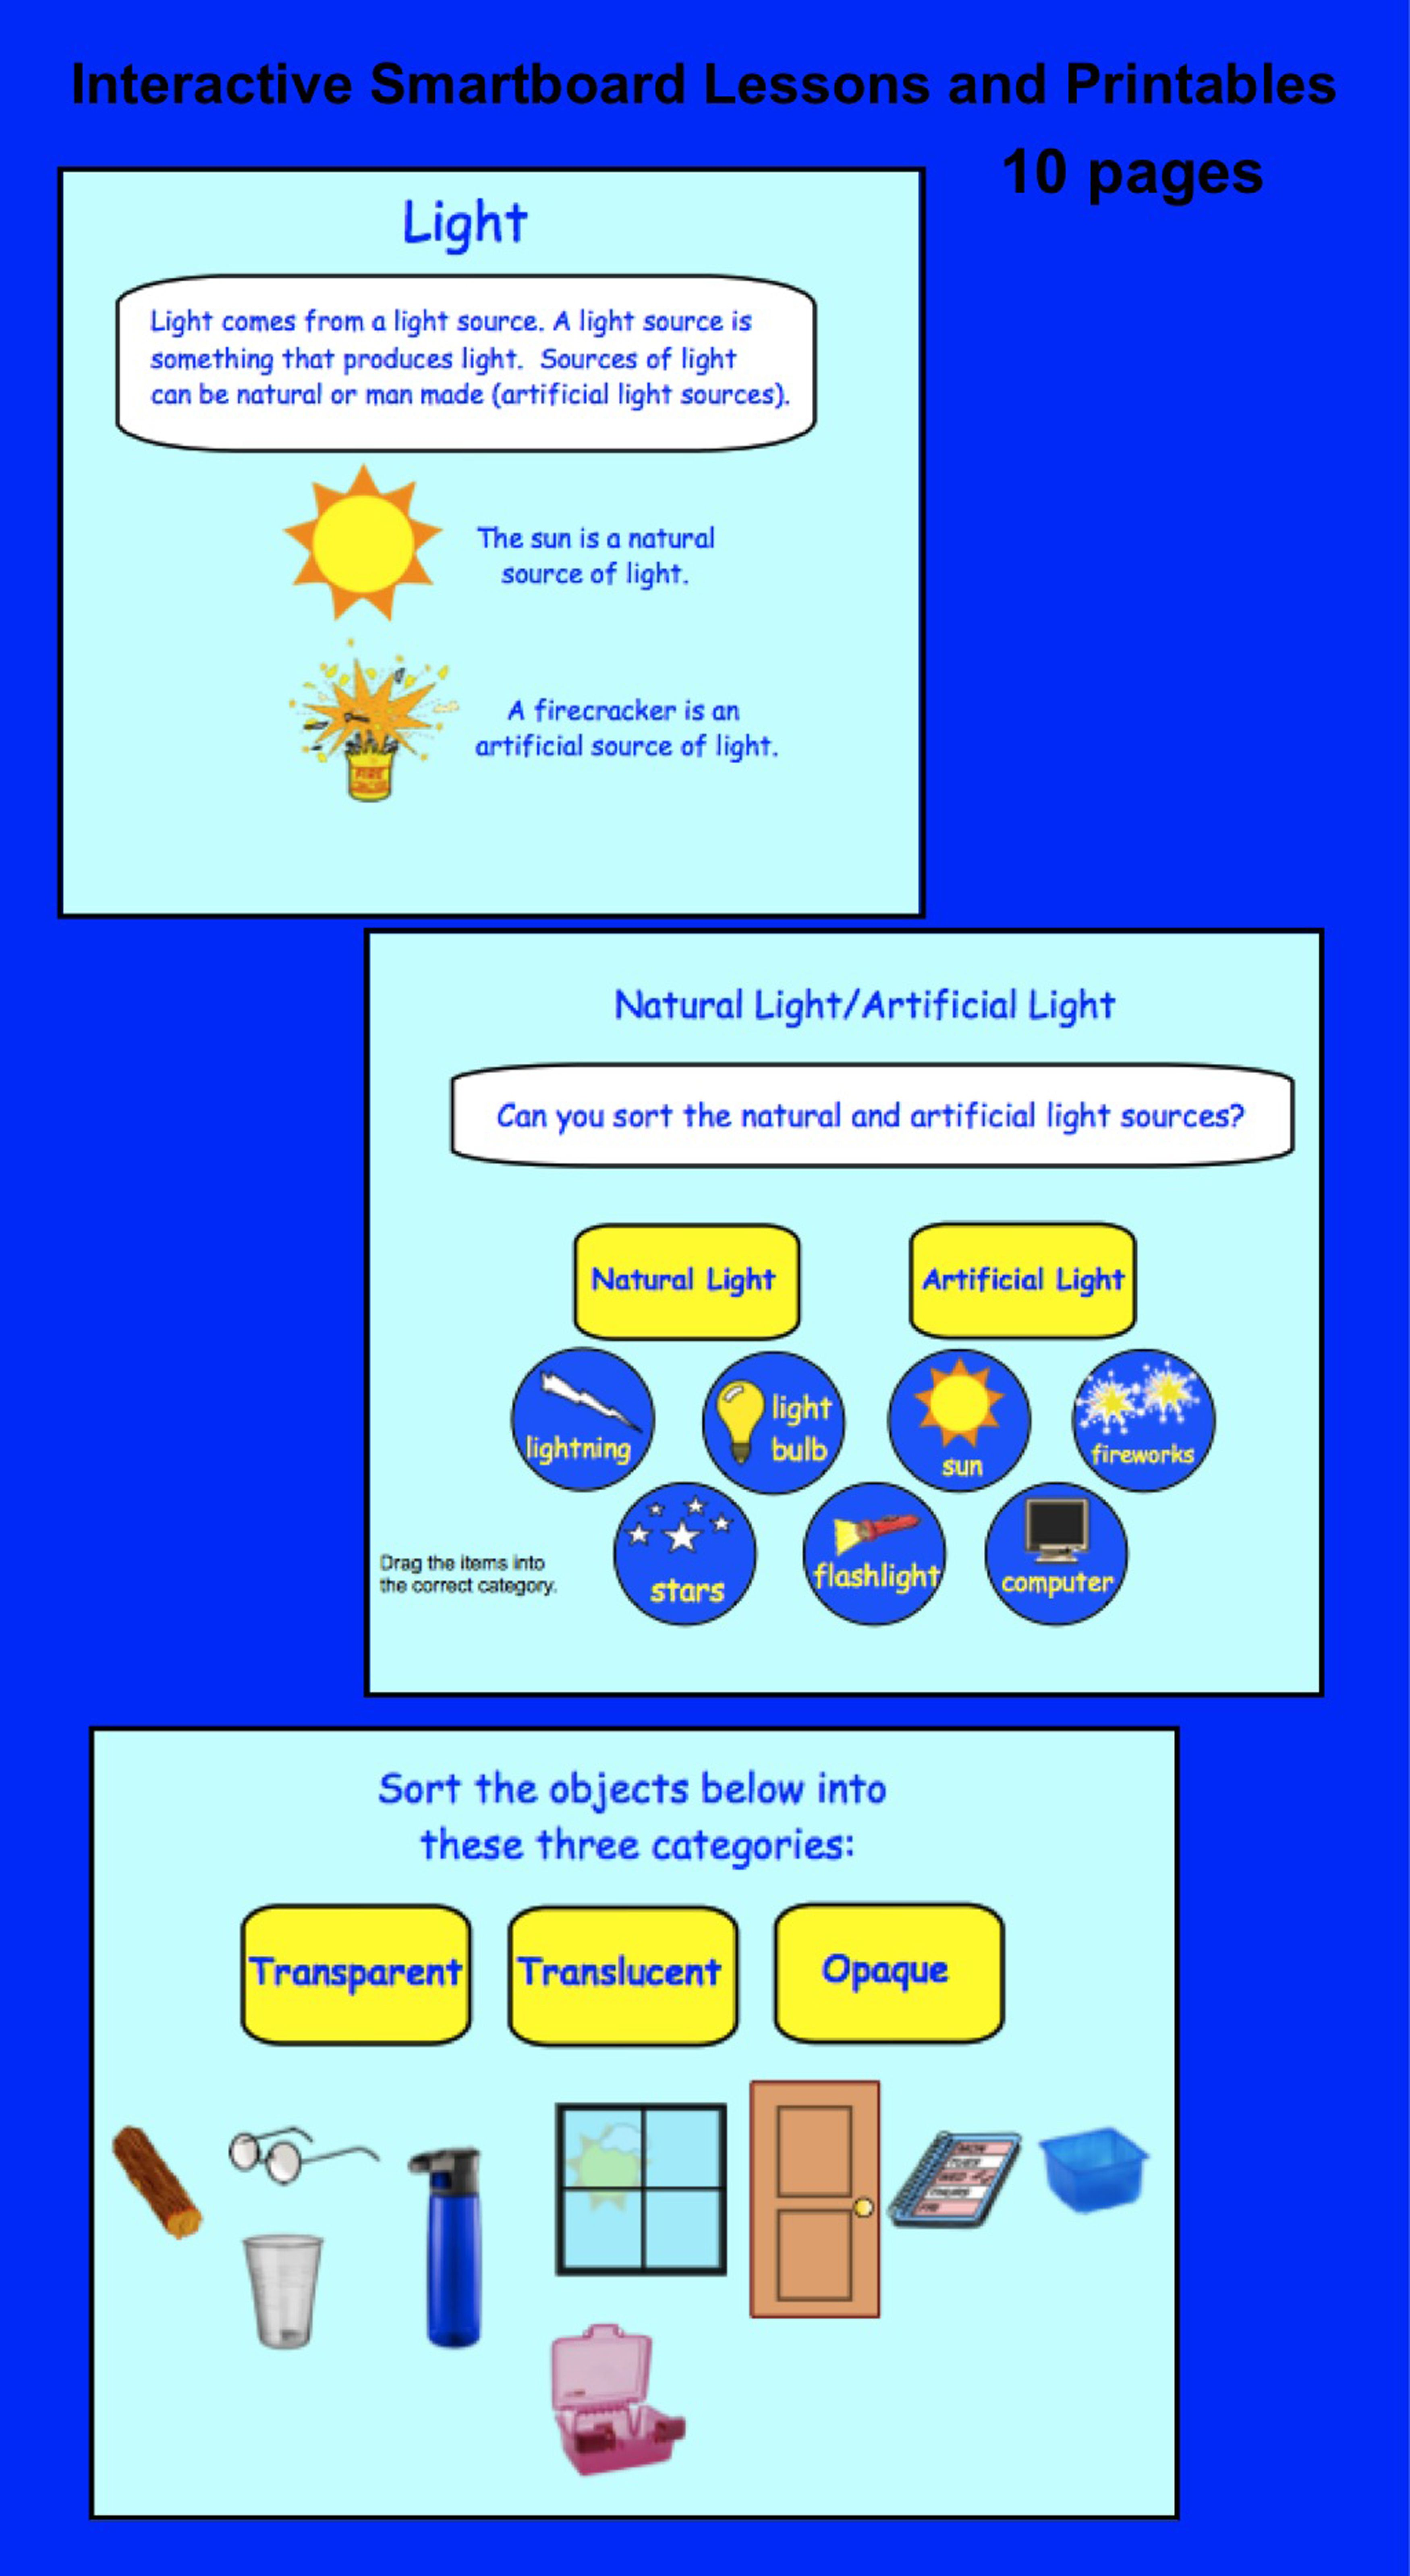 10 Page Interactive Smartboard Lessons And Printables On Light Science Lessons Elementary Smart Board Interactive Science [ 6395 x 3500 Pixel ]